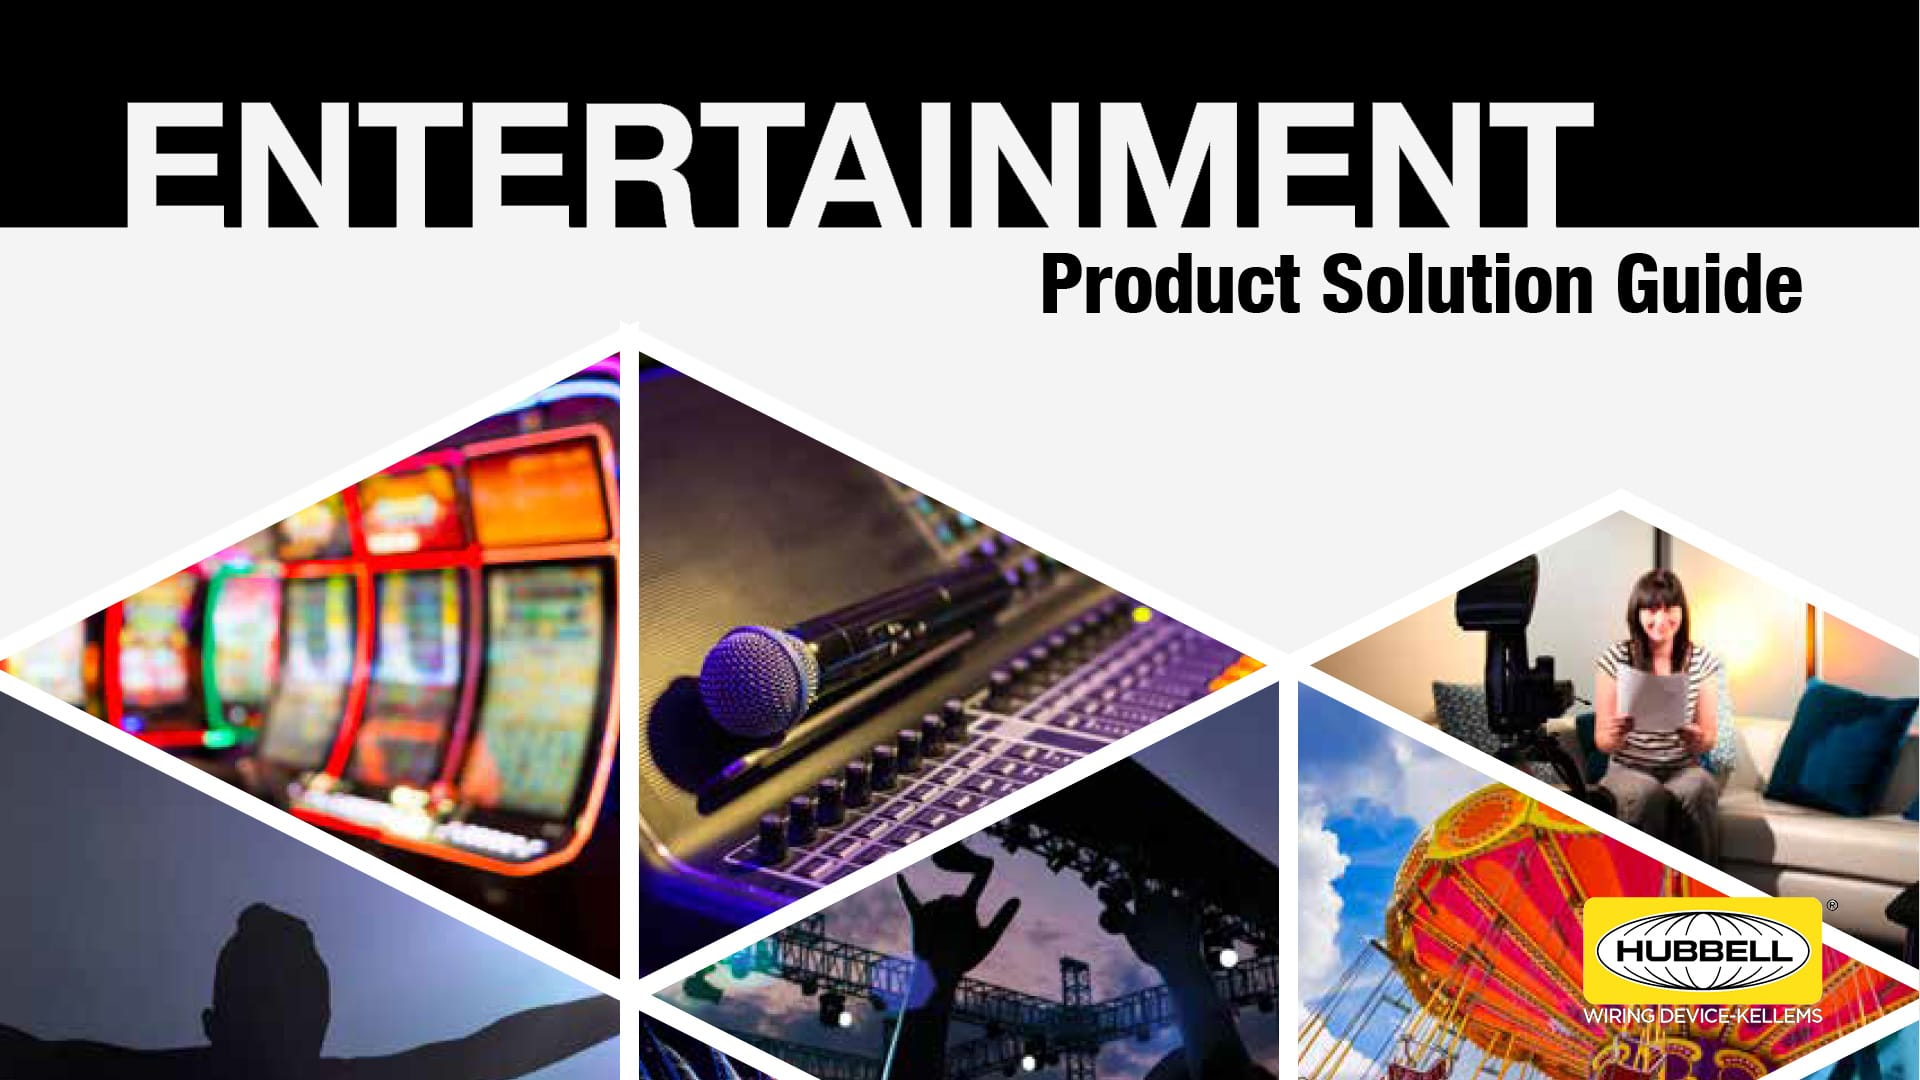 Hubbell Entertainment Product Guide